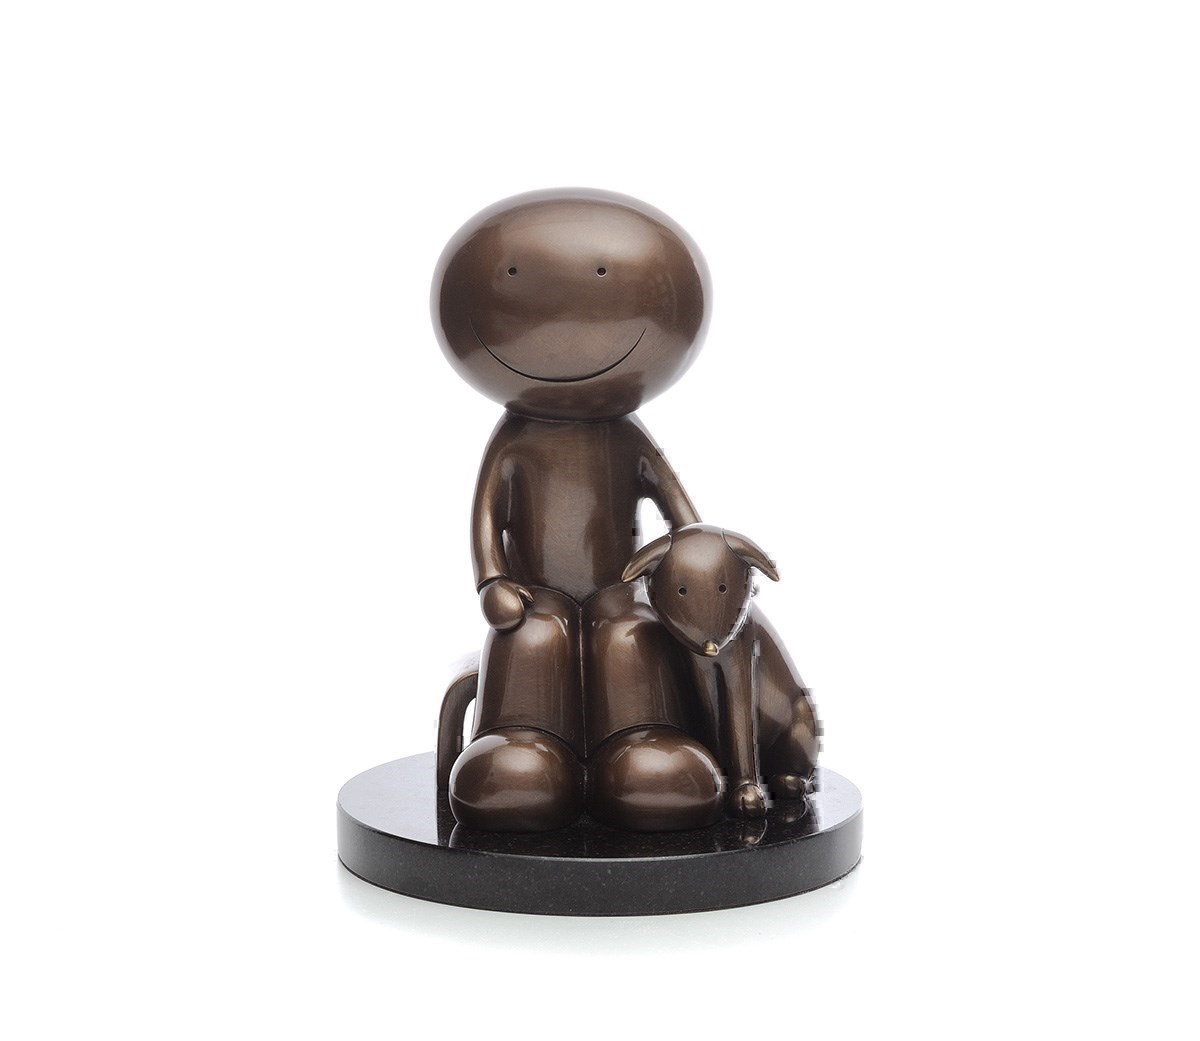 The Great Outdoors (Small) by Doug Hyde - Bronze Sculpture sized 7x10 inches. Available from Whitewall Galleries